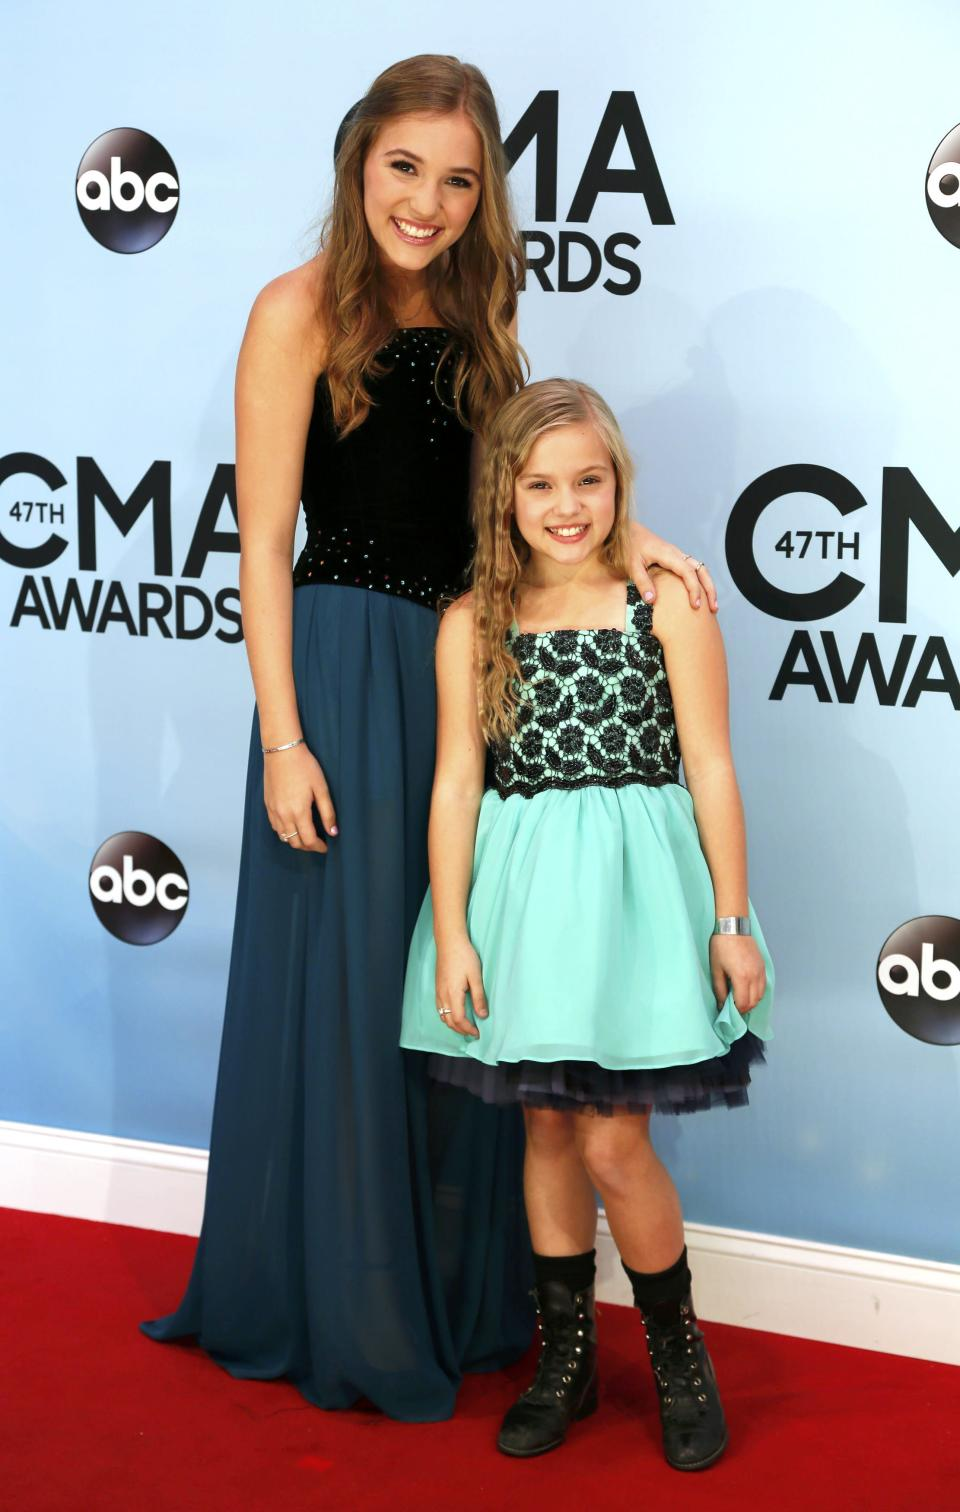 Actresses Lennon and Maisy Stella pose on arrival at the 47th Country Music Association Awards in Nashville, Tennessee November 6, 2013. REUTERS/Eric Henderson (UNITED STATES - Tags: ENTERTAINMENT)